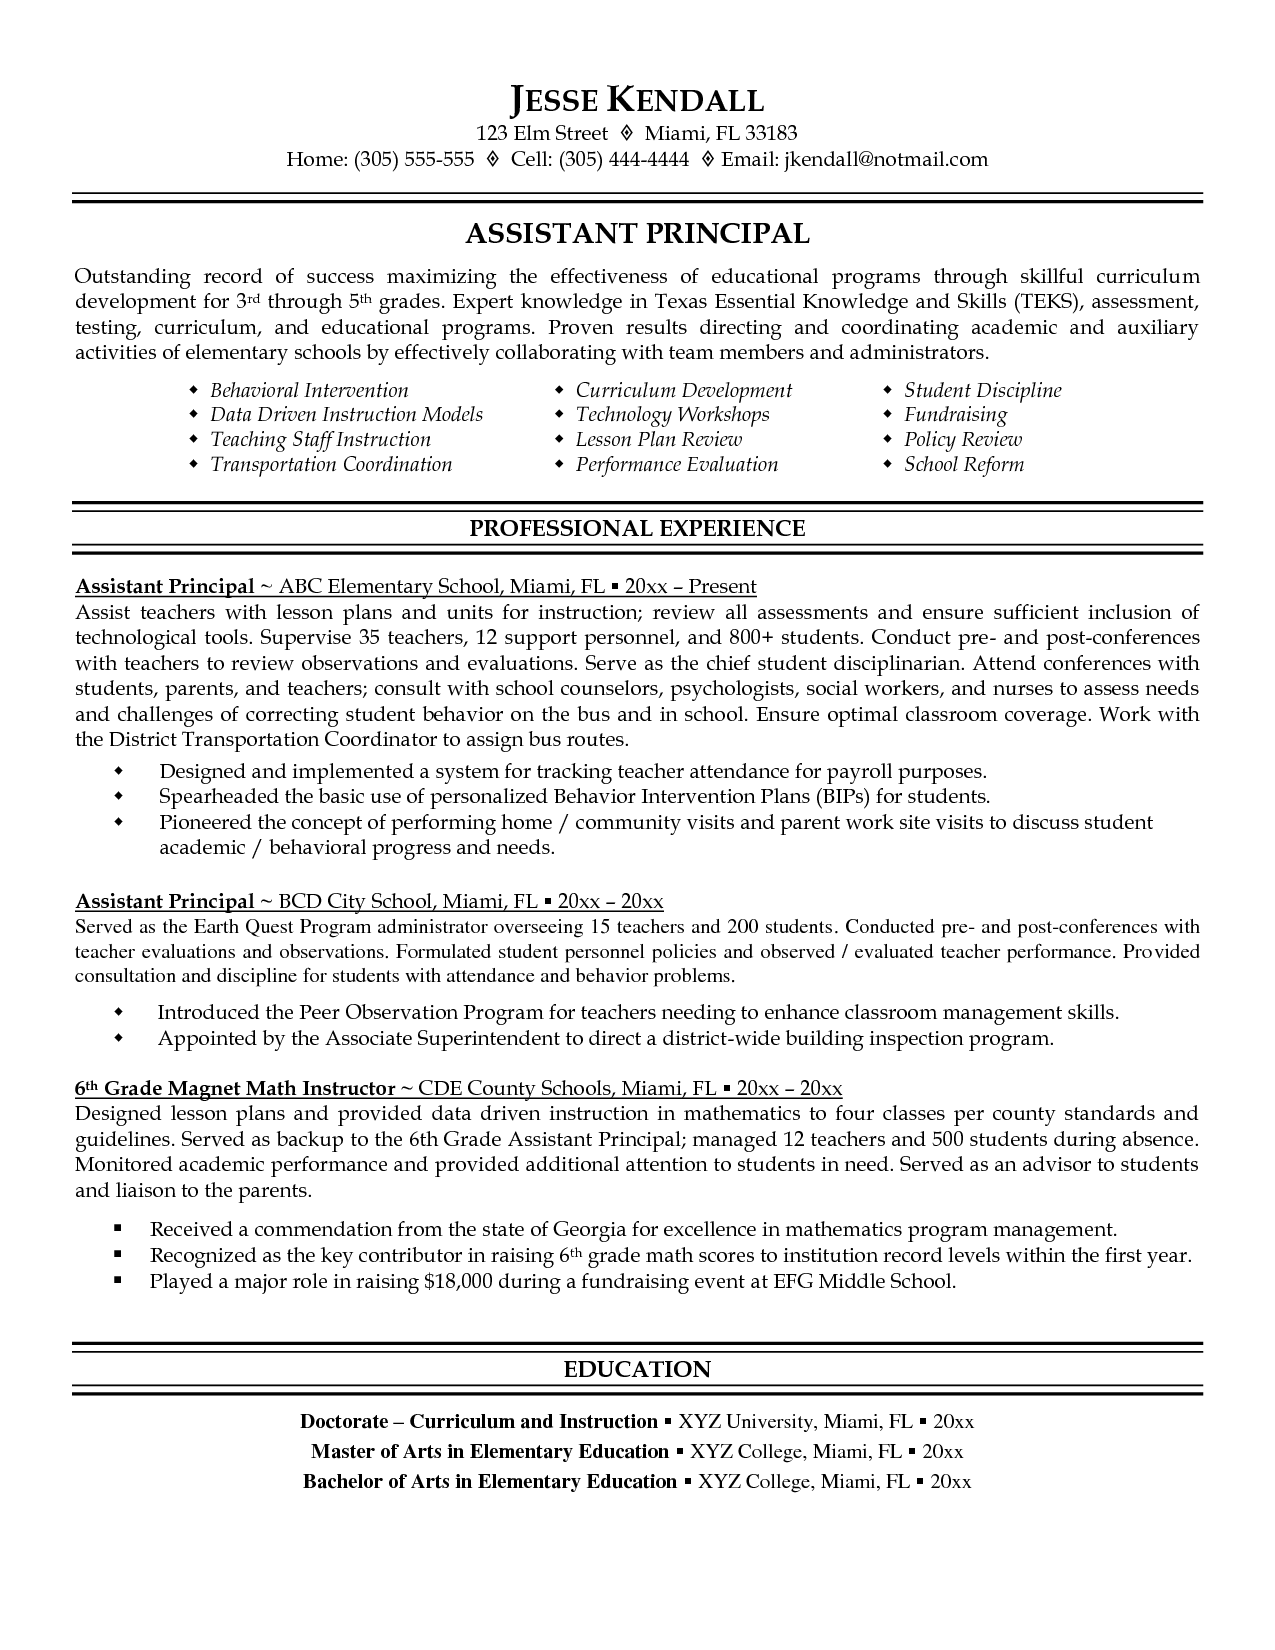 resume and vice principal assistant principal resume sample